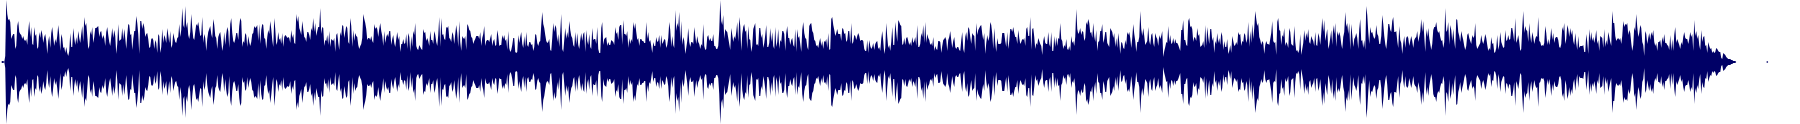 waveform of track #75060